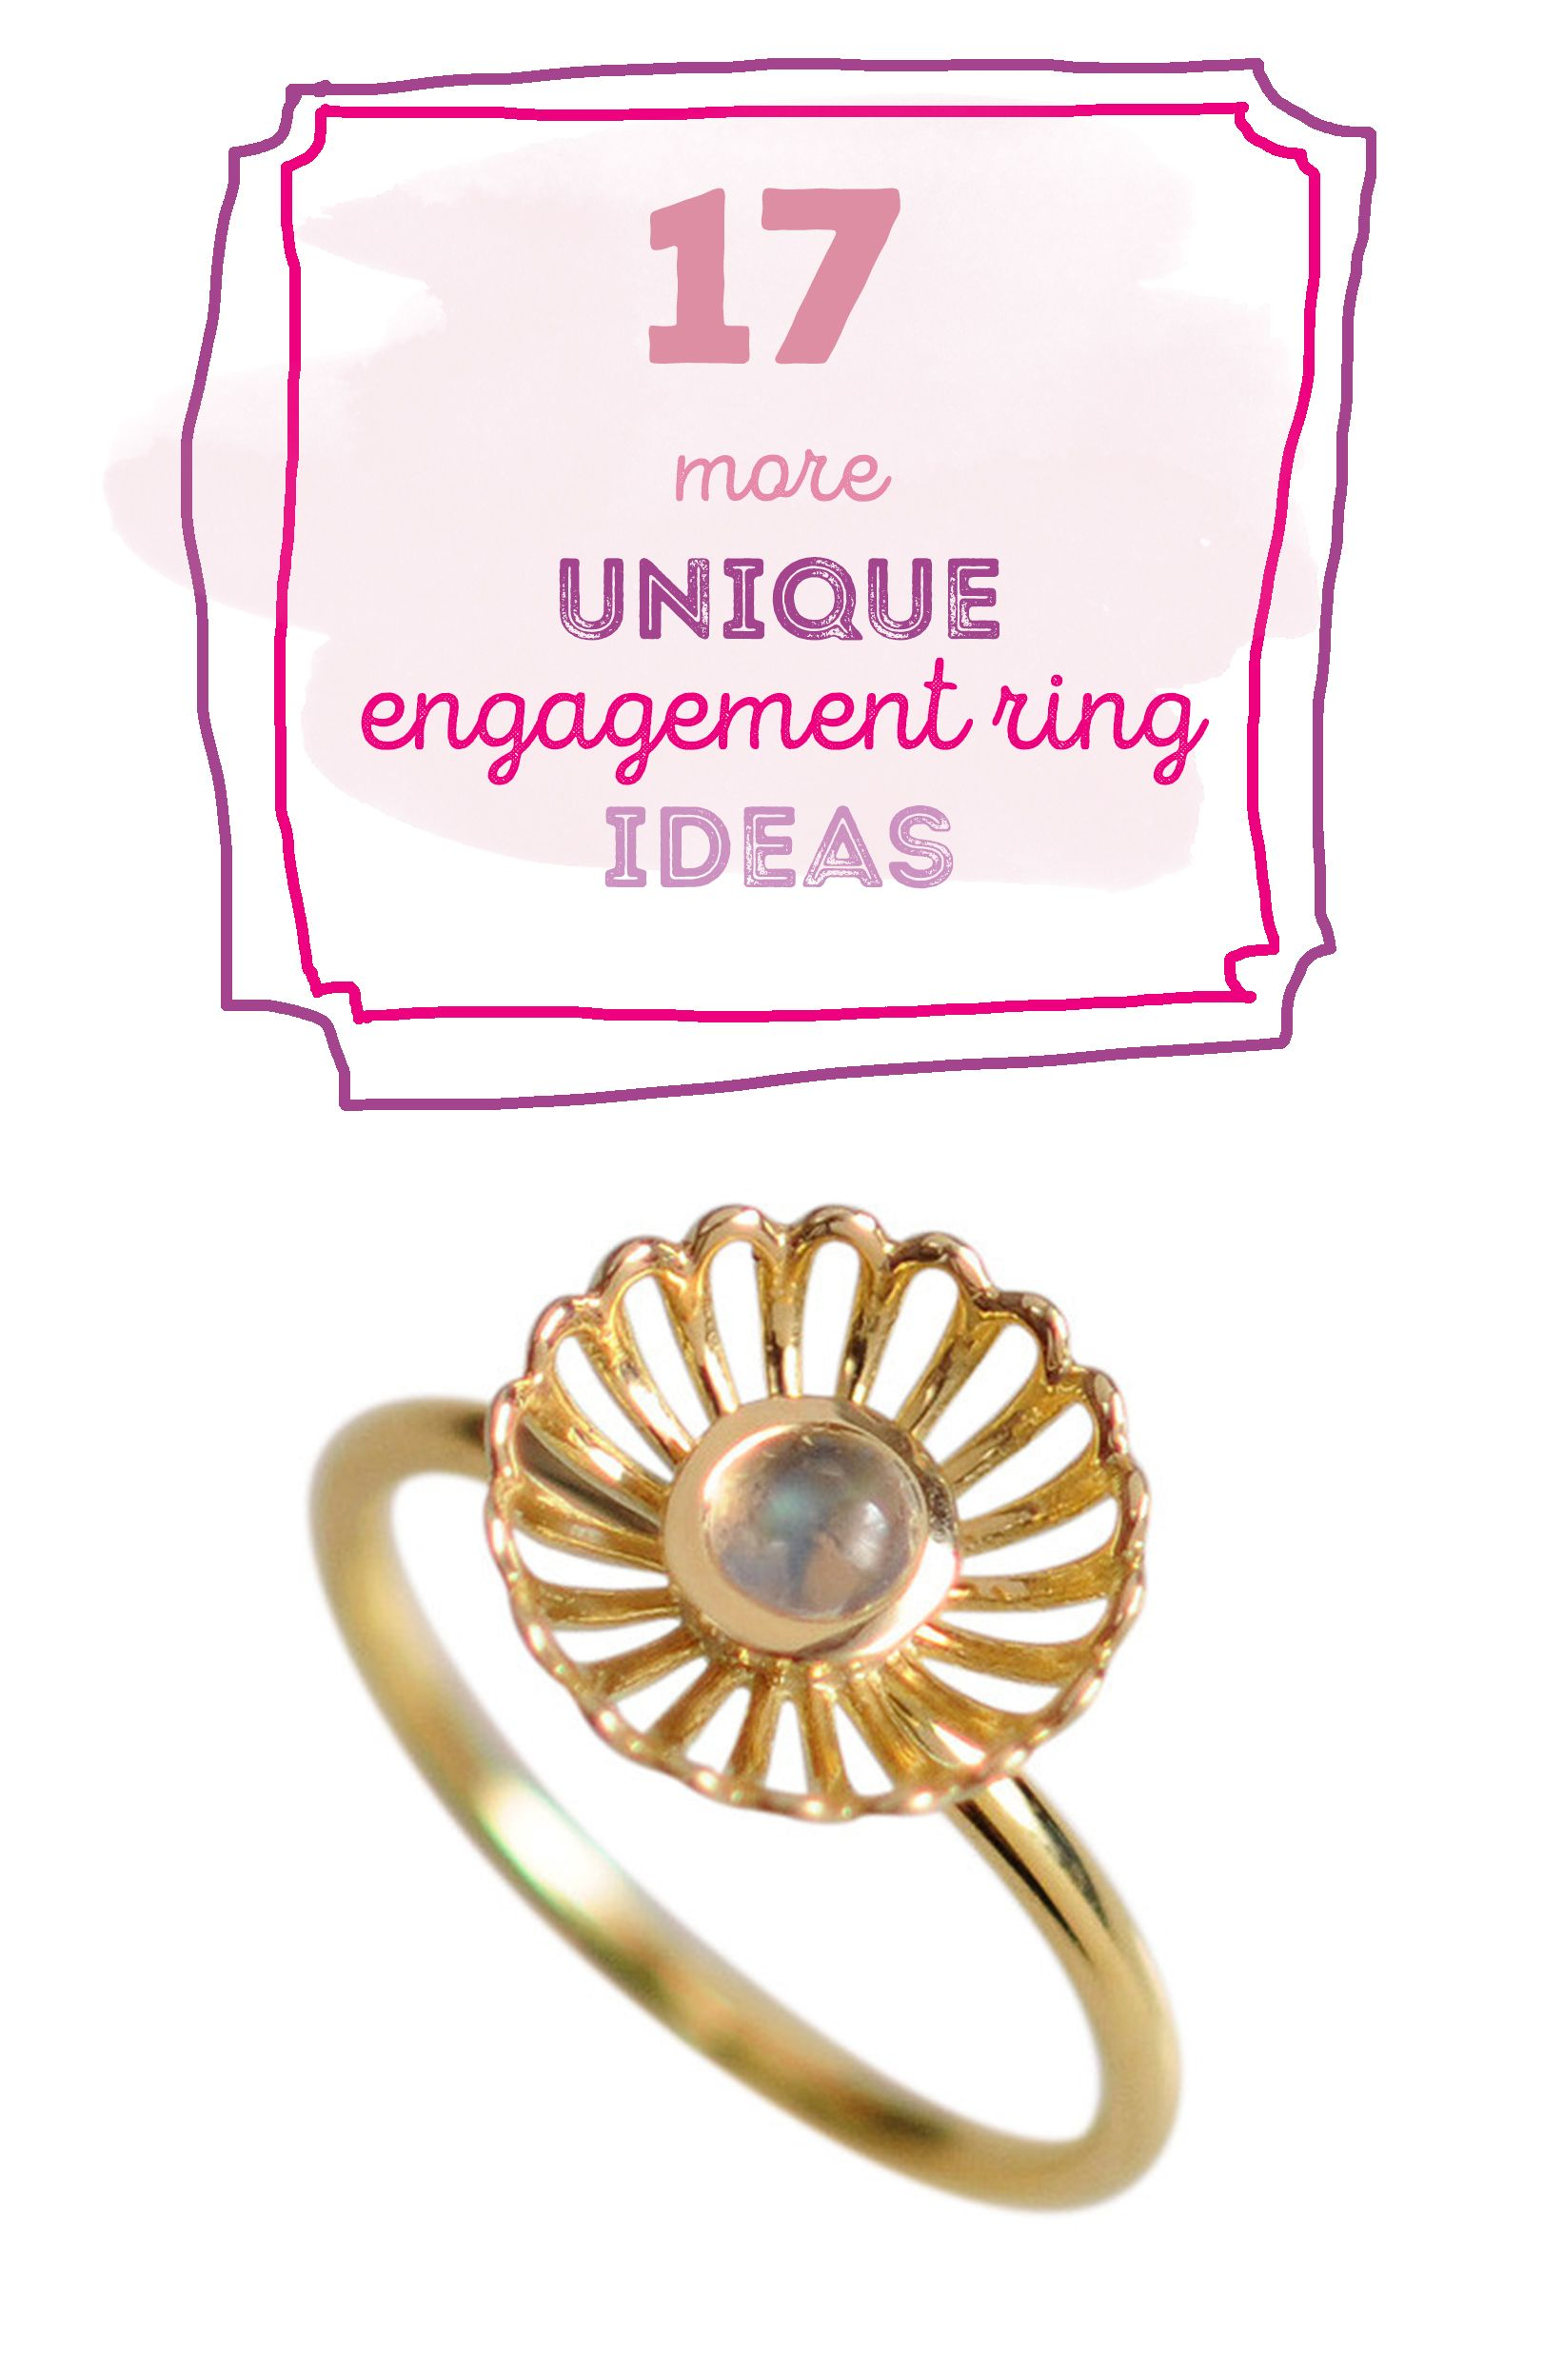 the modern designers aria pinterest pin engagement bride rings